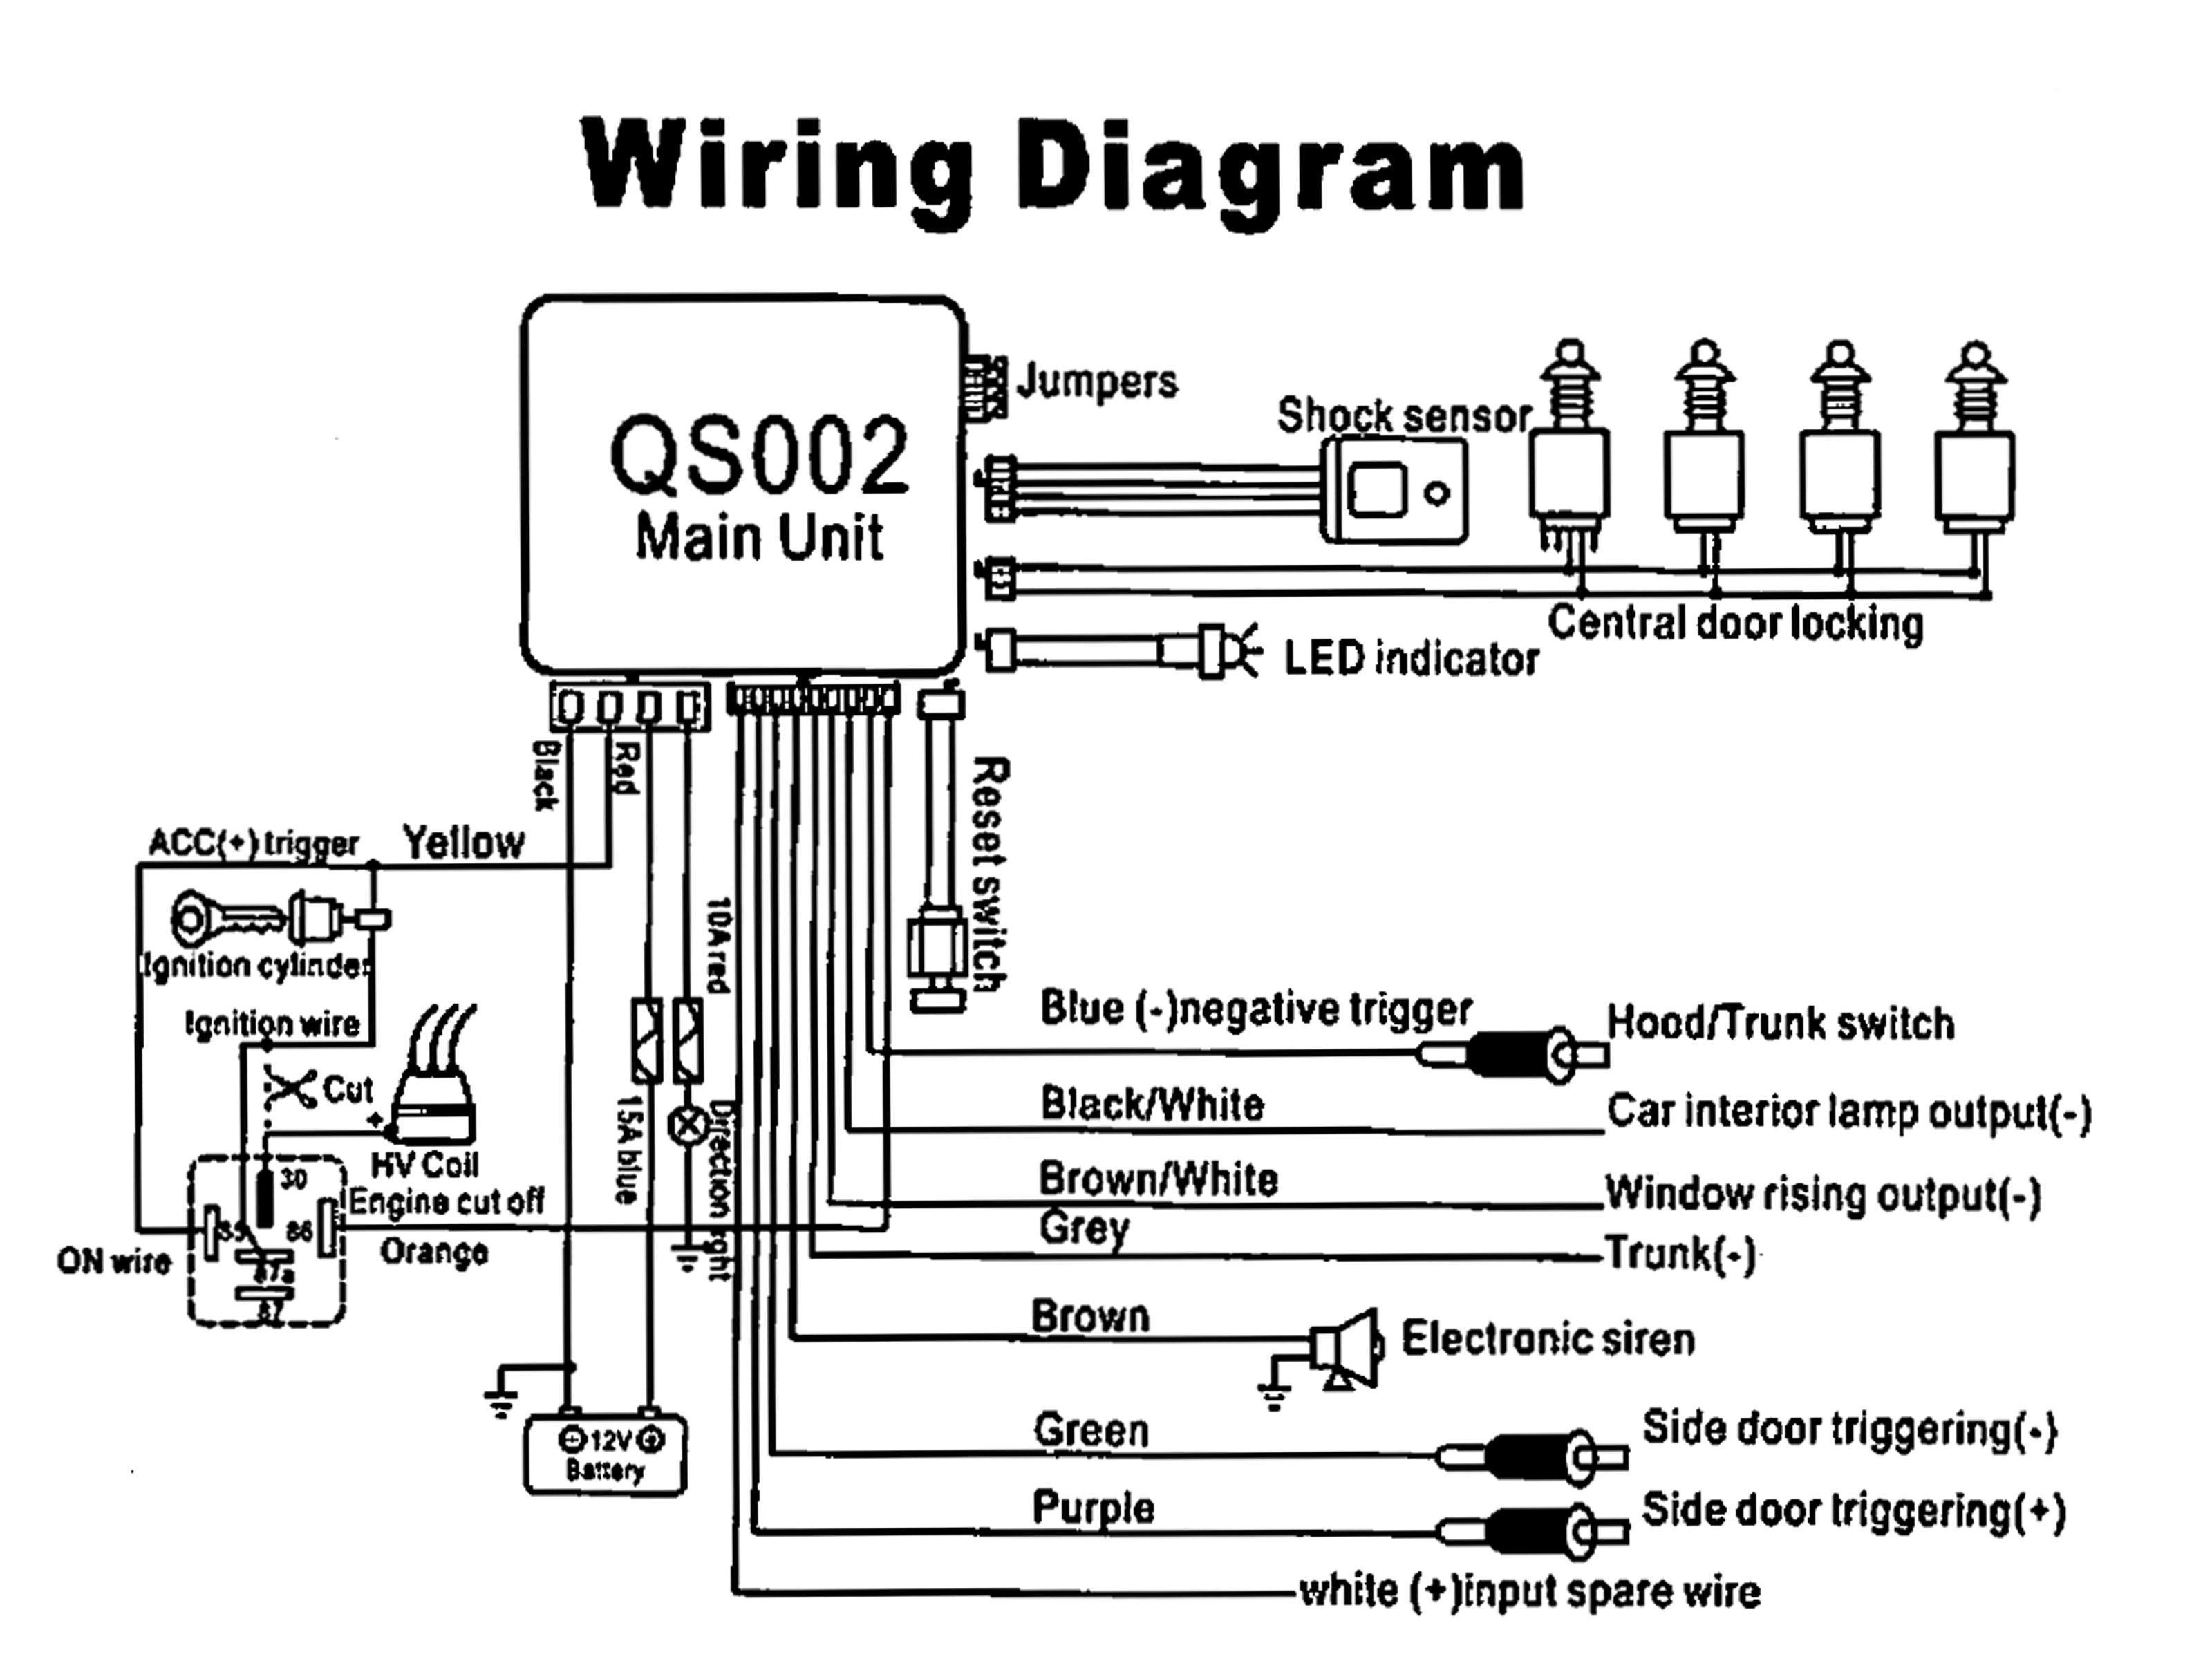 DIAGRAM] Silencer Alarm Wiring Diagrams FULL Version HD Quality Wiring  Diagrams - CENTURYWIRING.LAFABBRICADEGLIINGEGNERI.IT | Psl 2000 Smoke Detector Wiring Diagram |  | Wiring And Fuse Image - lafabbricadegliingegneri.it